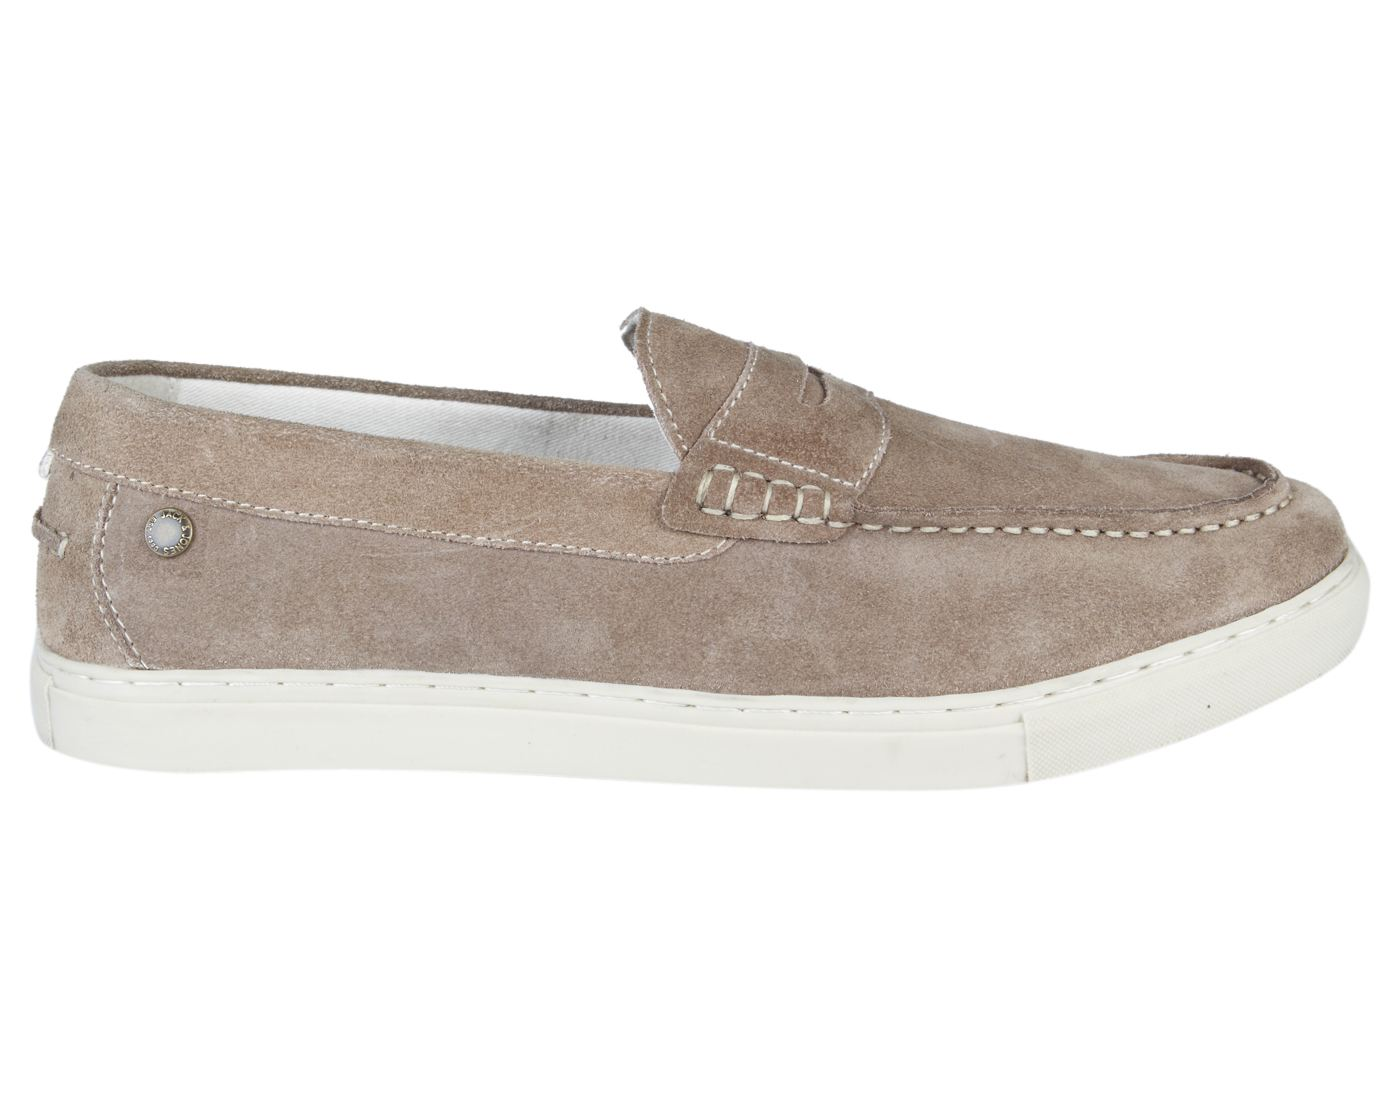 Jack & Jones Taupe Gray Leather (TPR Sole) Slip-On Sneakers